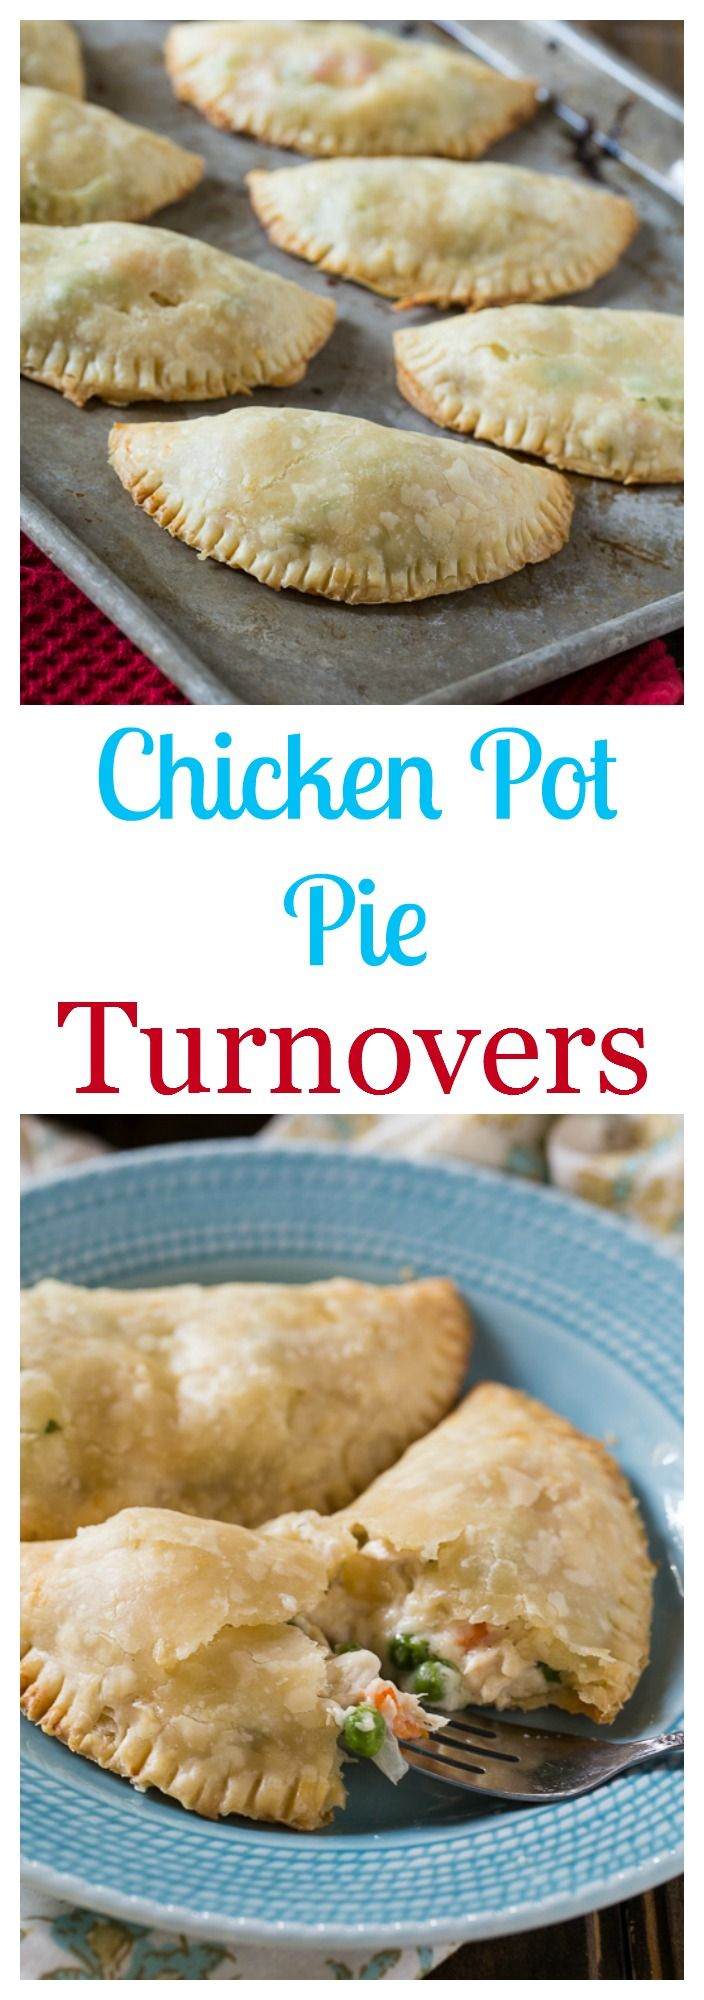 Easy Chicken Pot Pie Turnovers made with refrigerated pie crusts. lunch or dinner, easy to make and freeze thaw one out then take it to work the next day.